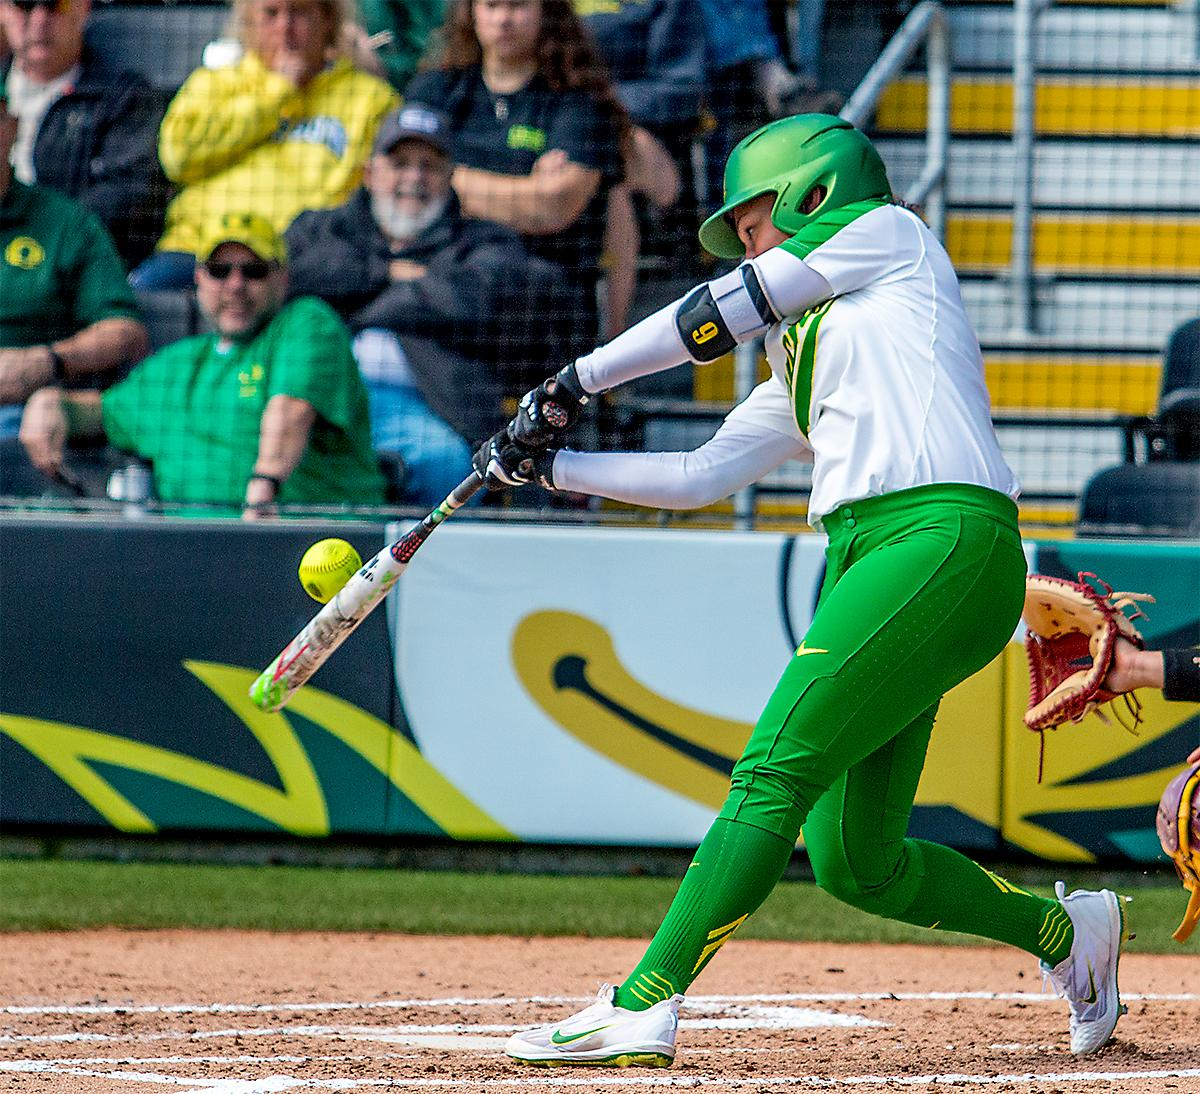 The Duck's Shannon Rhodes (#9) hits the ball up and out of bounds. The Oregon Ducks Softball team took their third win over the Arizona Sun Devils, 1-0, in the final game of the weekends series that saw the game go into an eighth inning before the Duck?s Mia Camuso (#7) scored a hit allowing teammate Haley Cruse (#26) to run into home plate for a point. The Ducks are now 33-0 this season and will next play a double header against Portland State on Tuesday, April 4 at Jane Sanders Stadium. Photo by August Frank, Oregon News Lab